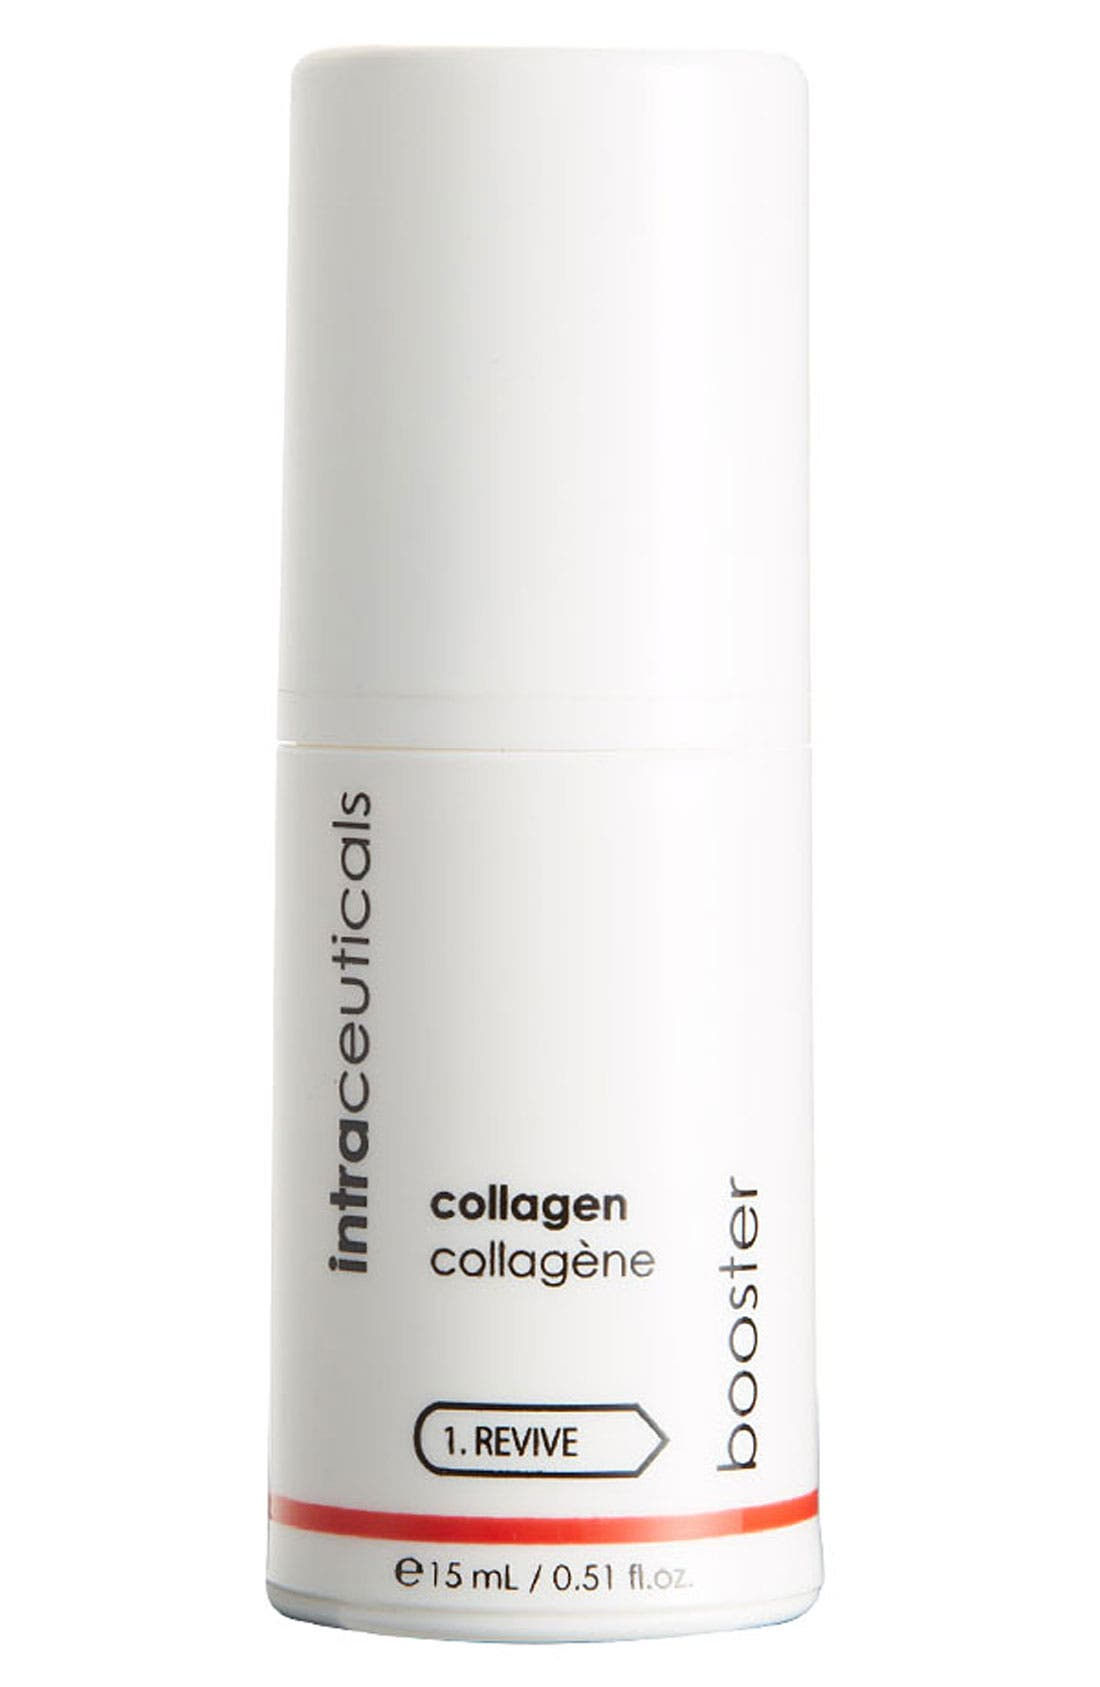 'Booster' Collagen Serum,                             Main thumbnail 1, color,